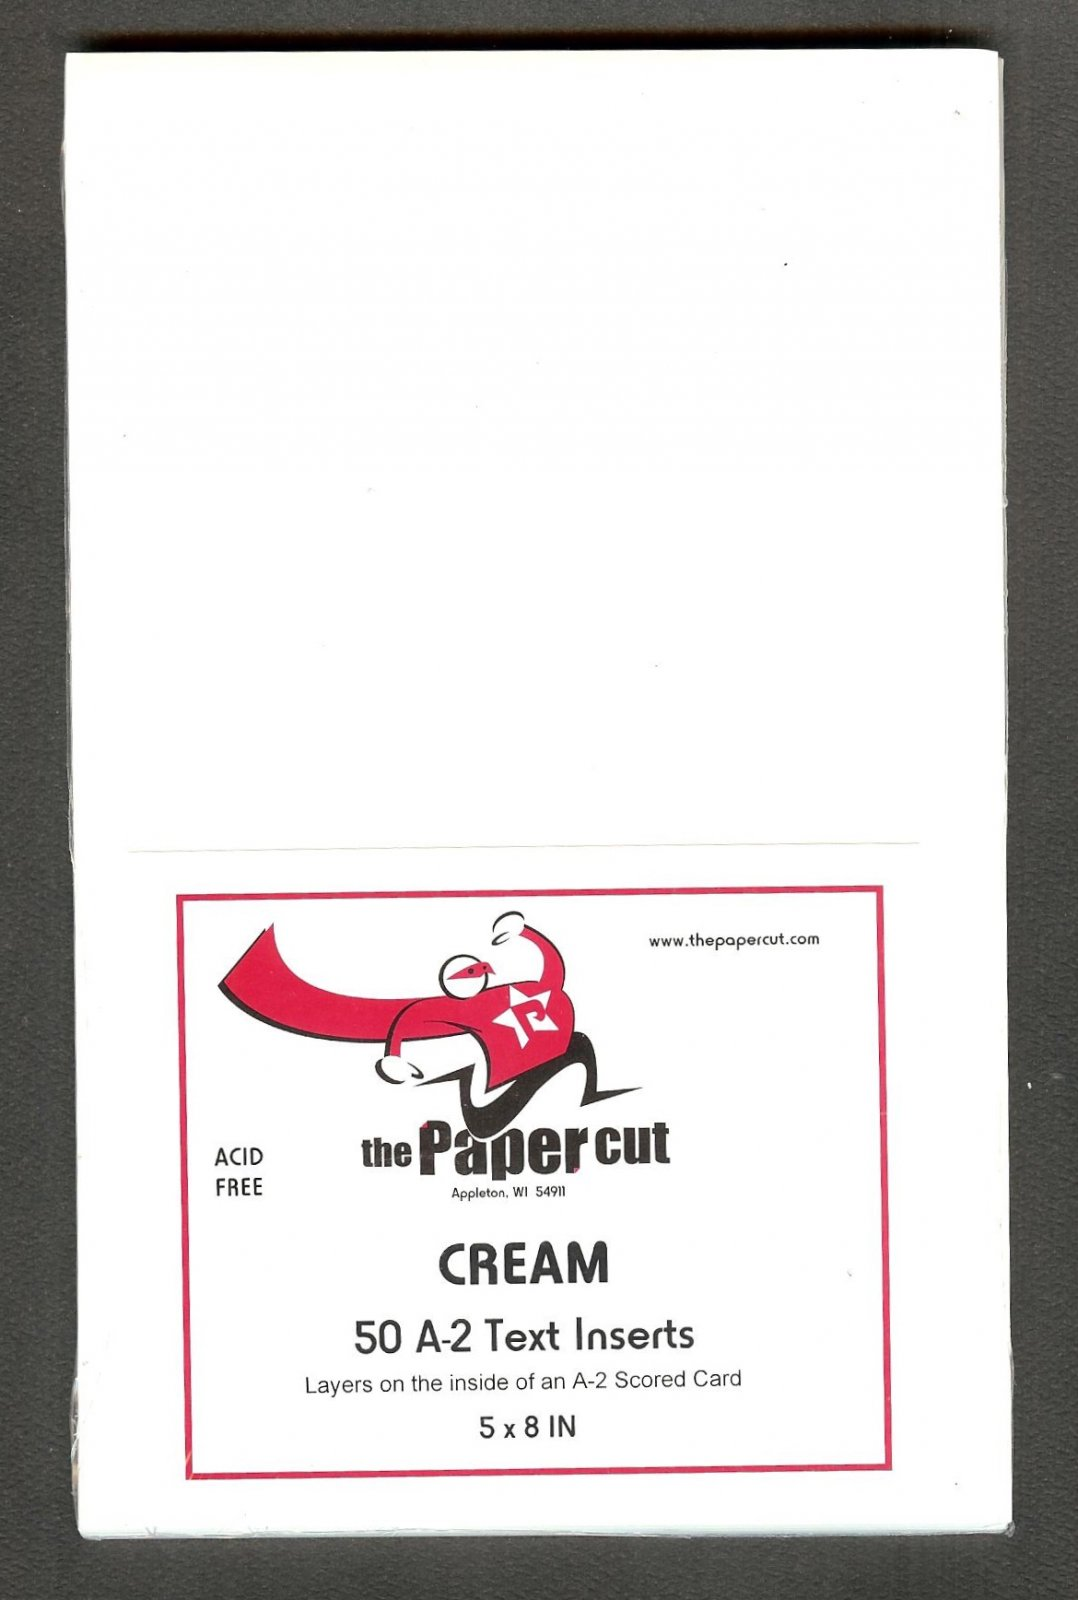 The Paper Cut - Text Inserts, Cream